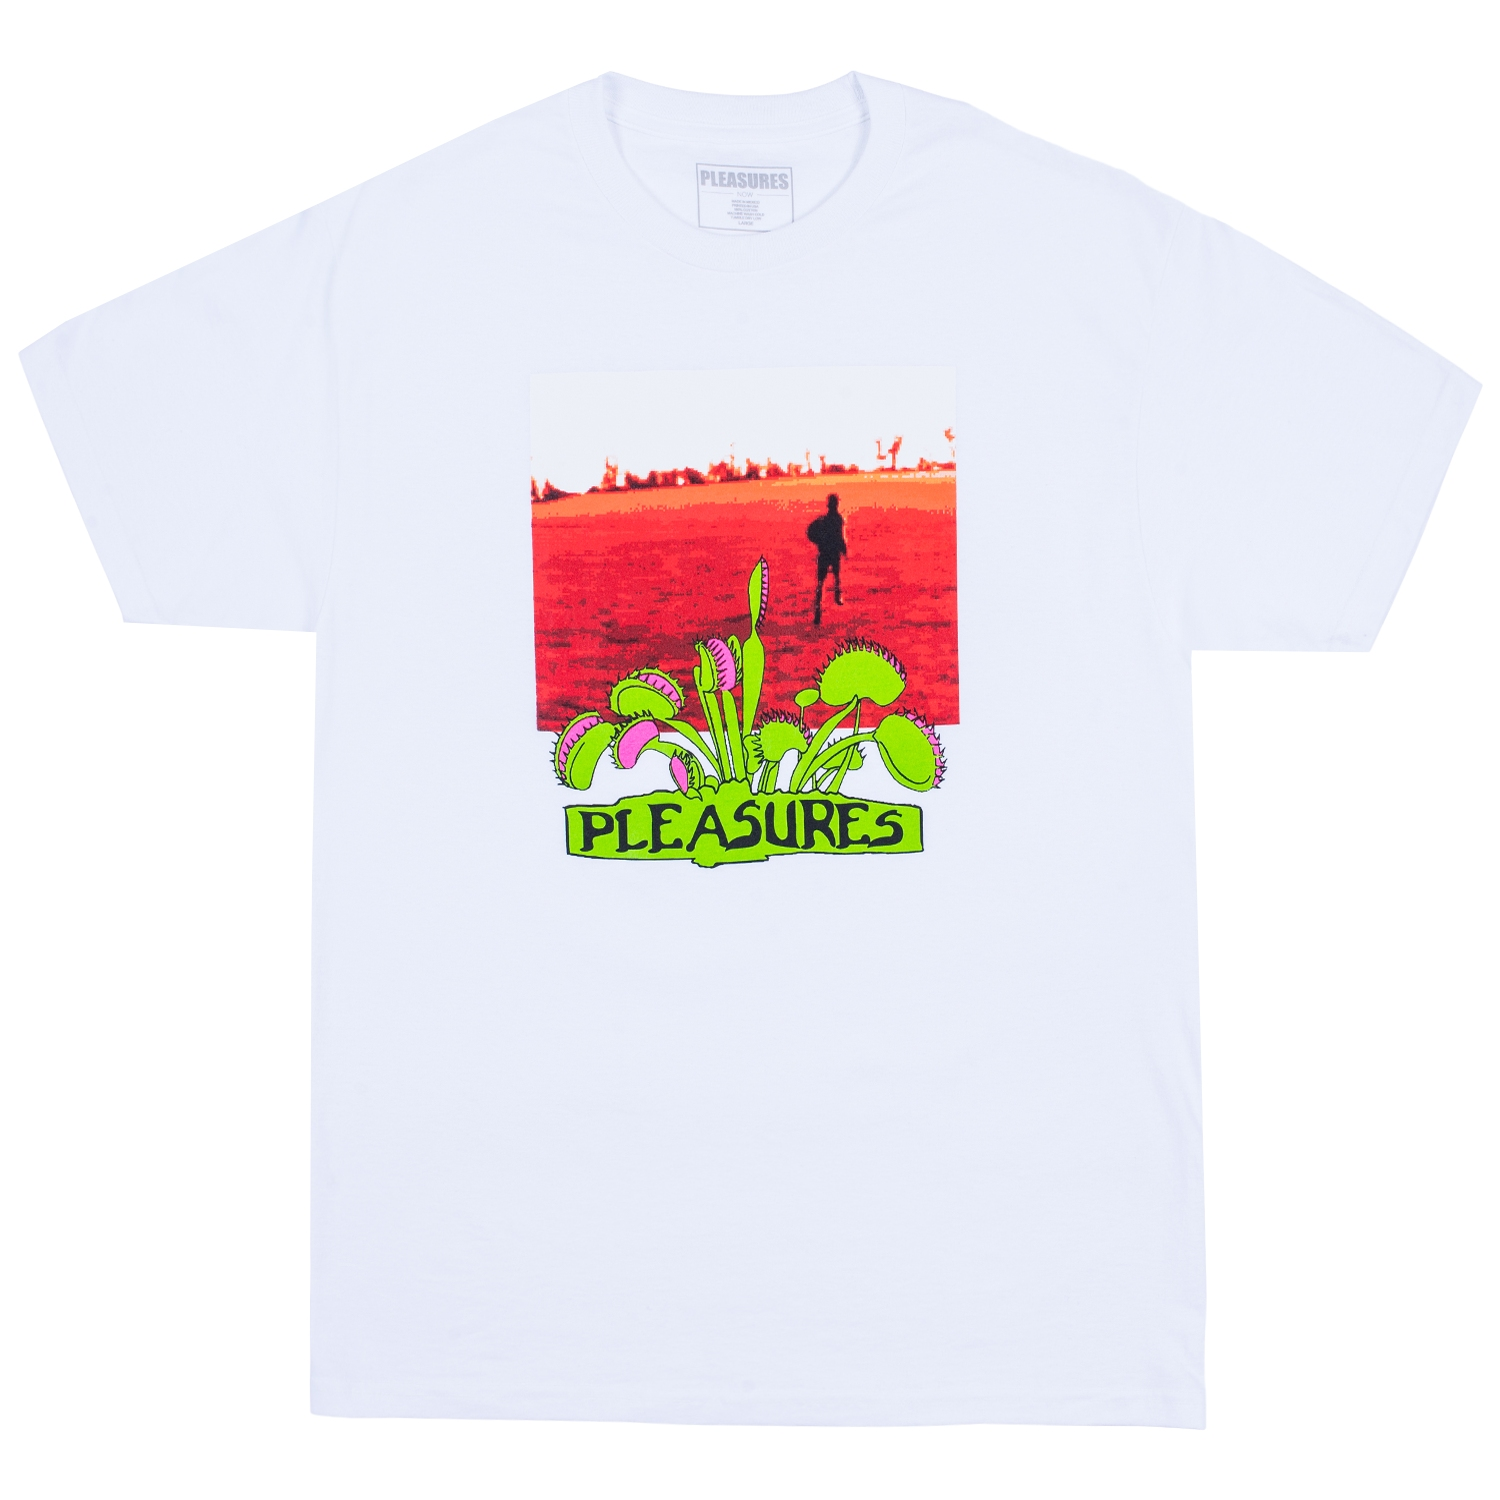 【PLEASURES/プレジャーズ】TRAPPED T-SHIRT Tシャツ / WHITE